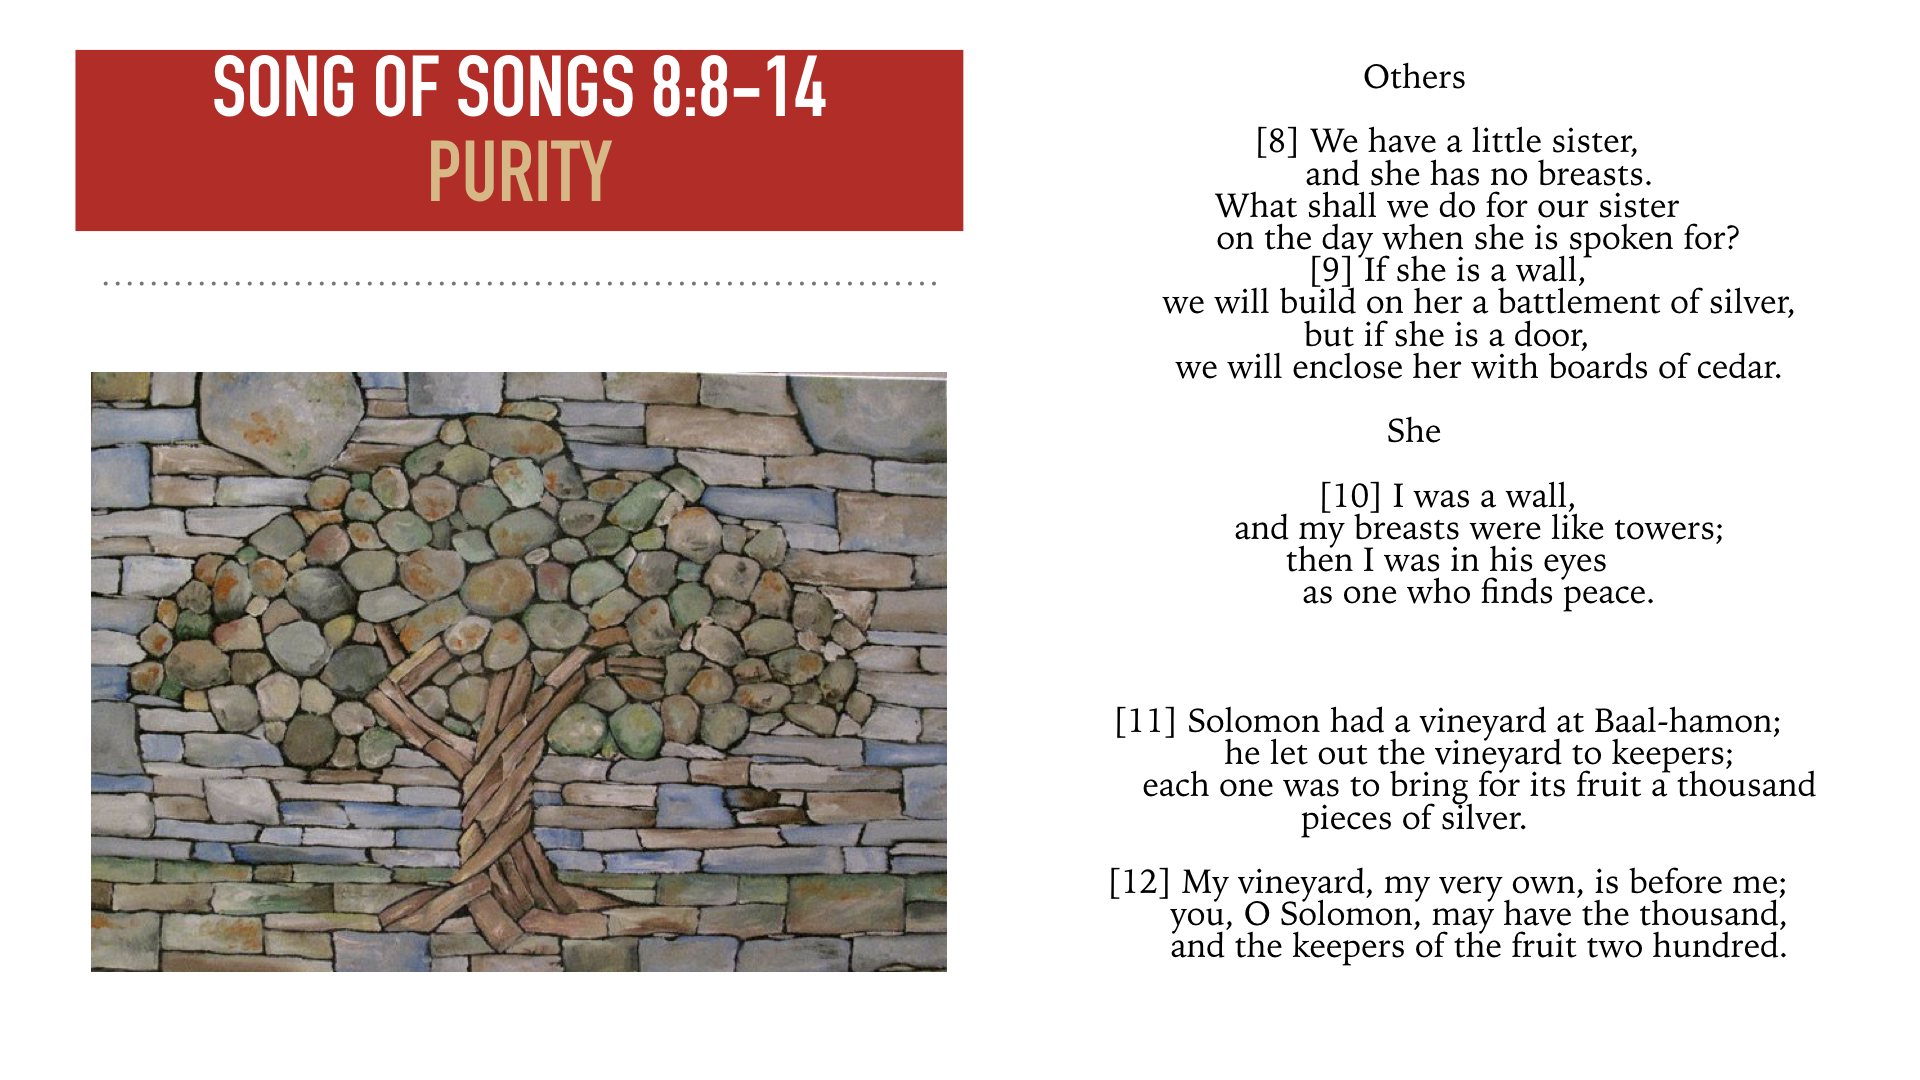 SONG OF SONGS 8:8-14.003.jpeg